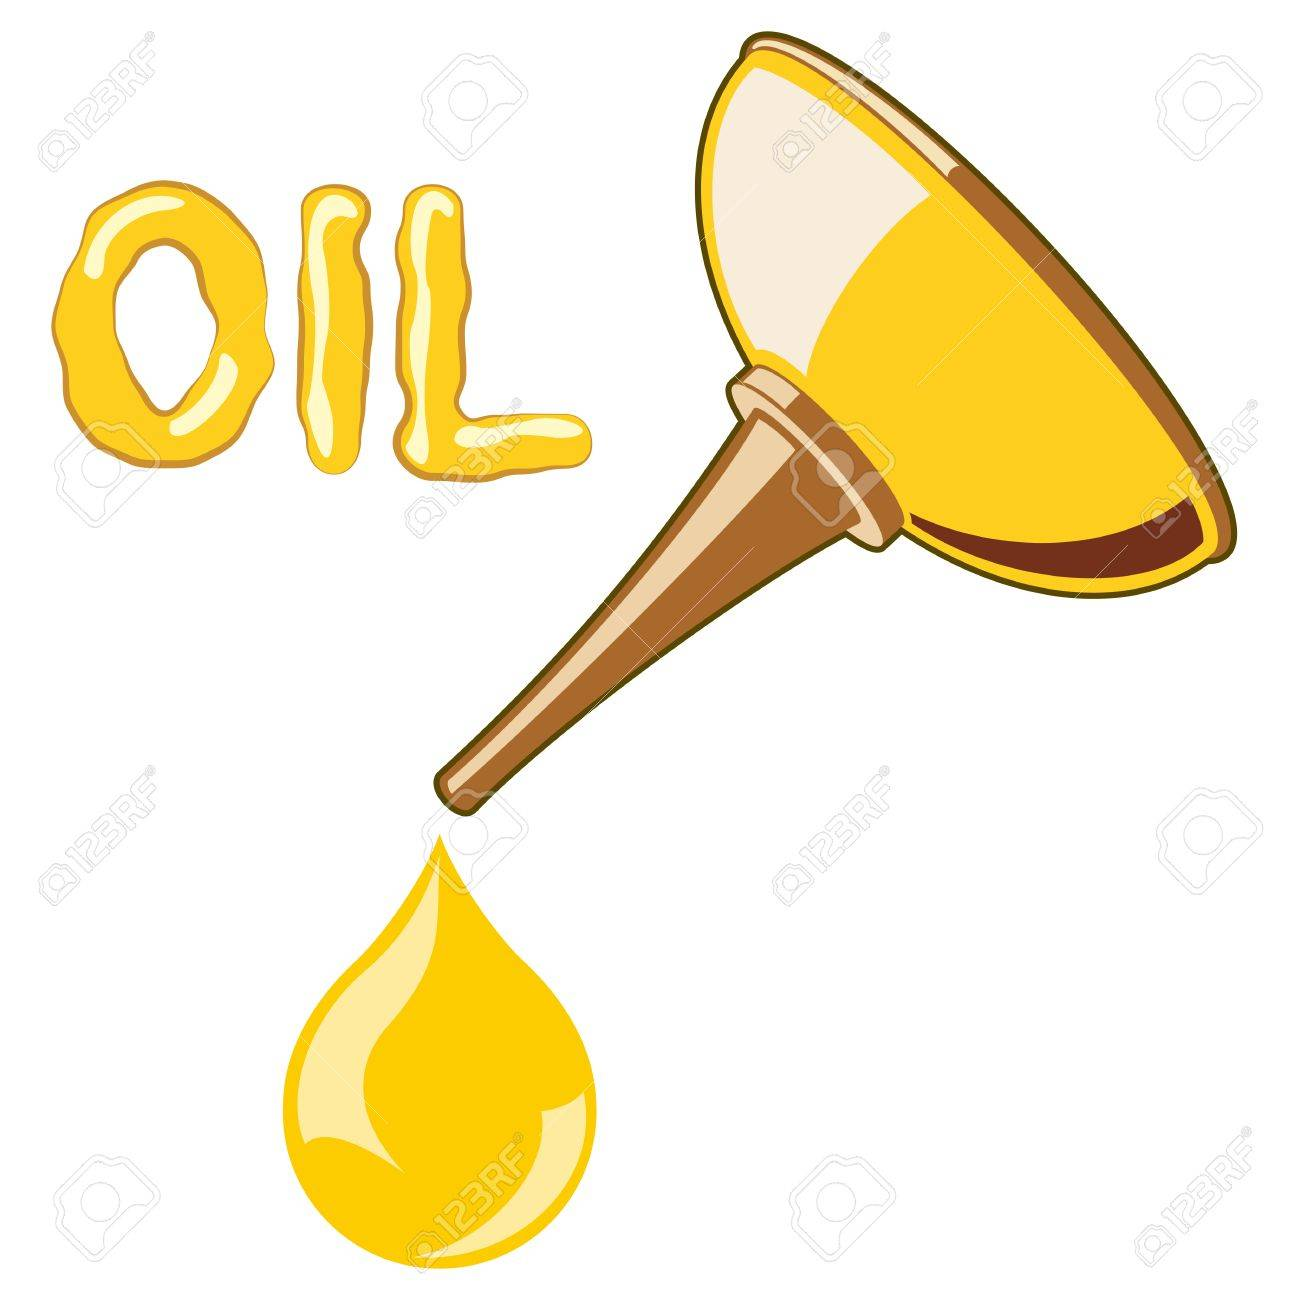 Oil Lubricator with oil. no mash no gradient Stock Vector - 29300893